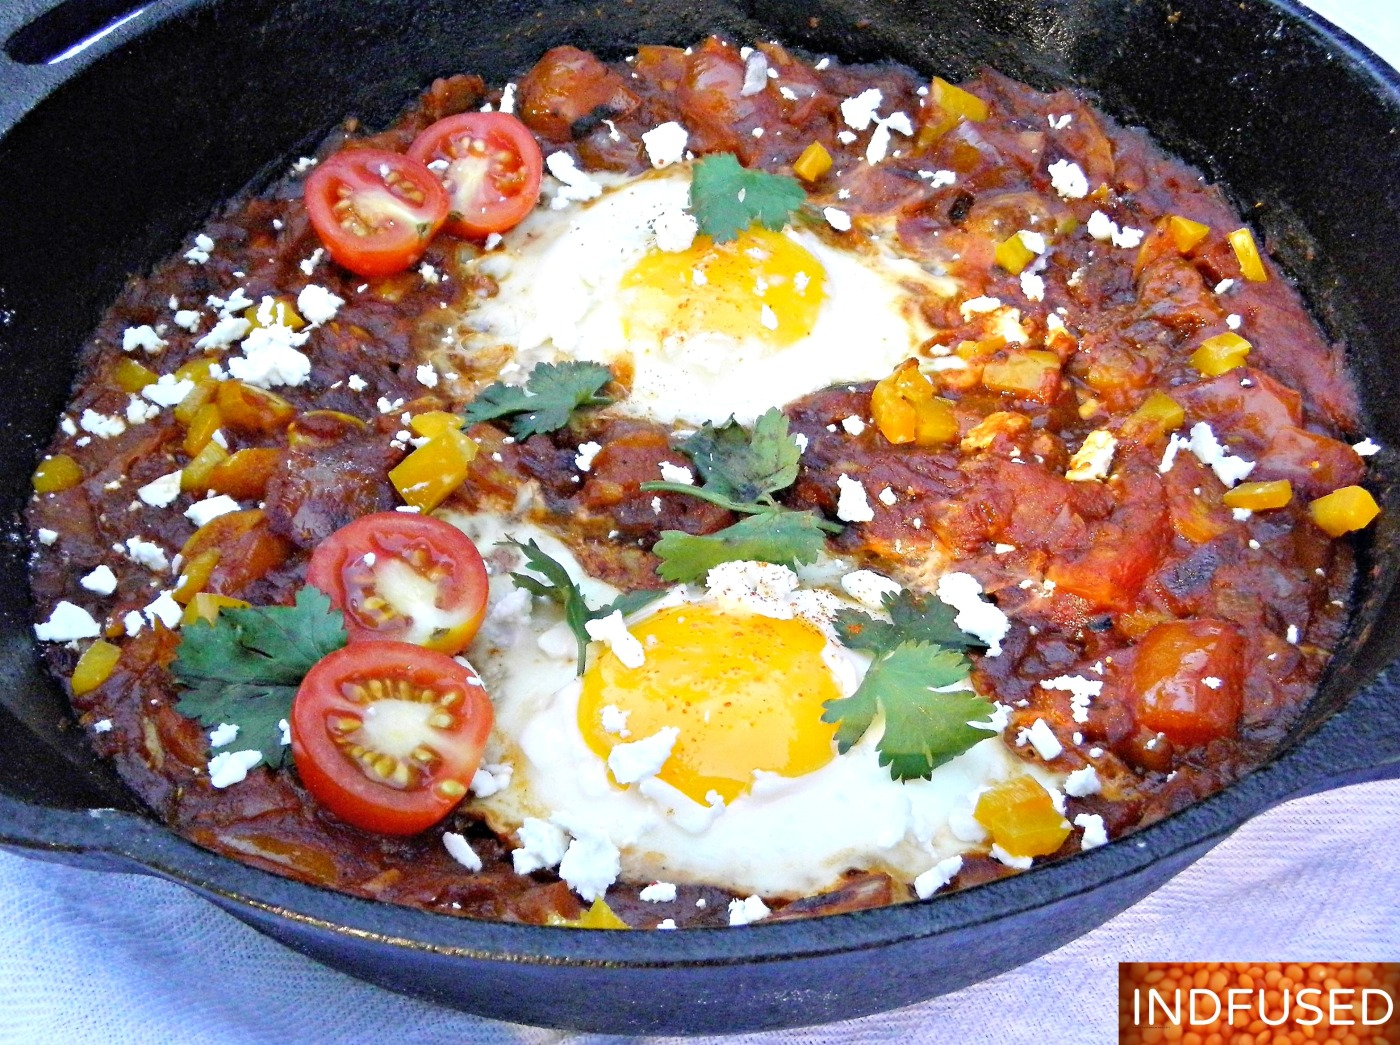 Indian fusion recipe for Shakshuka with #Hunts tomato paste, #MTR garam masala, #eggs, and #Athenos feta cheese